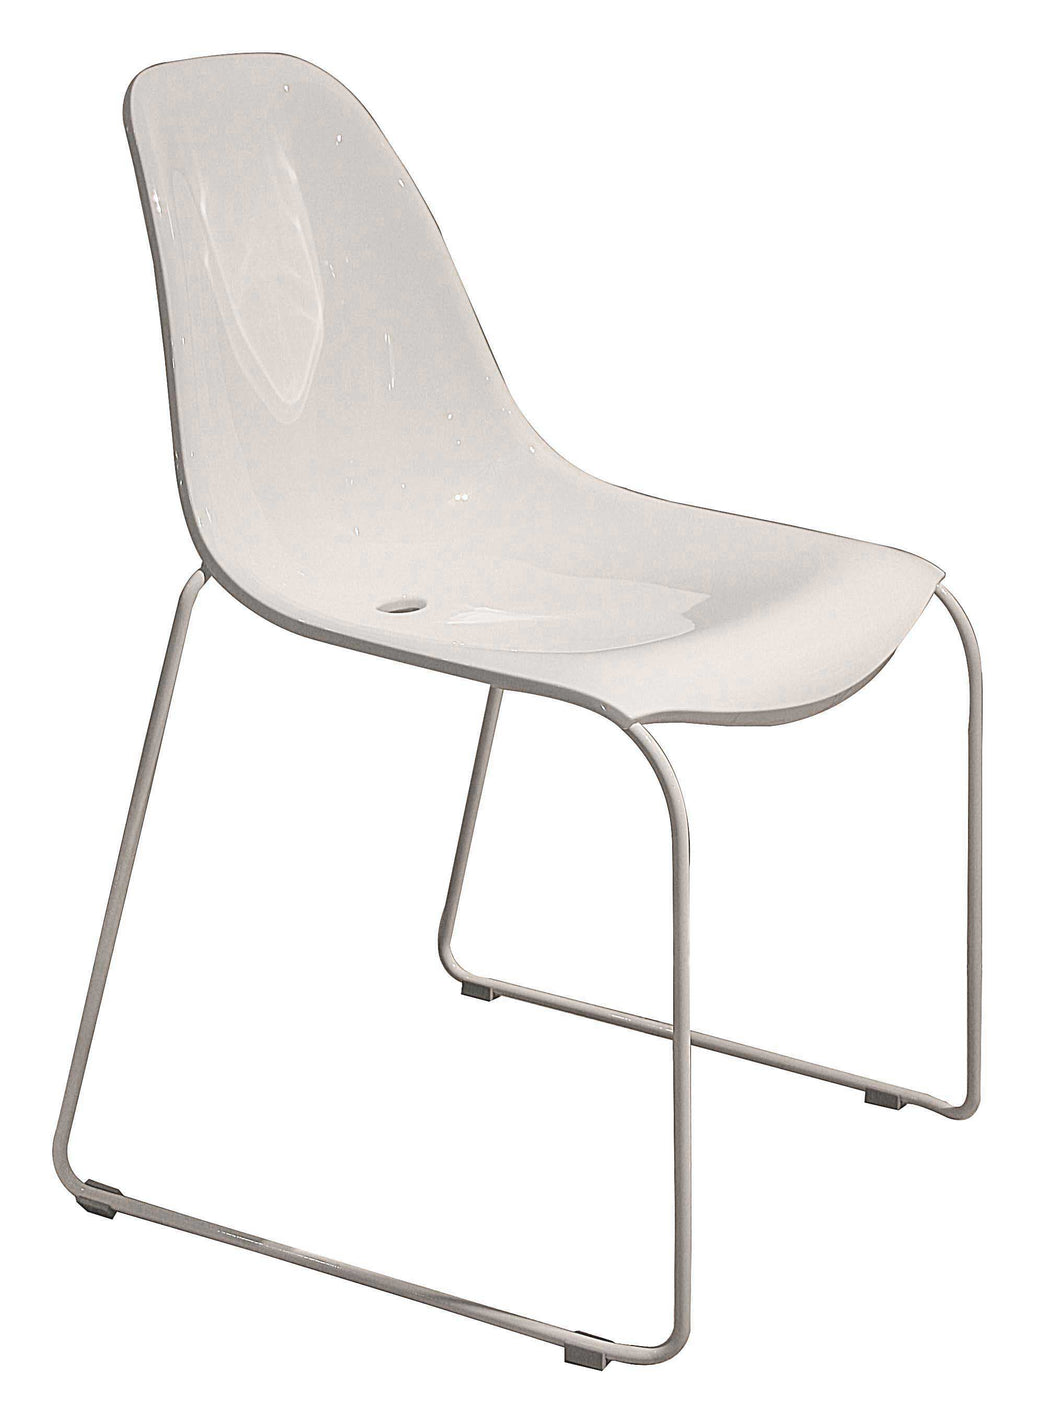 Chair White P/coated - White Shell